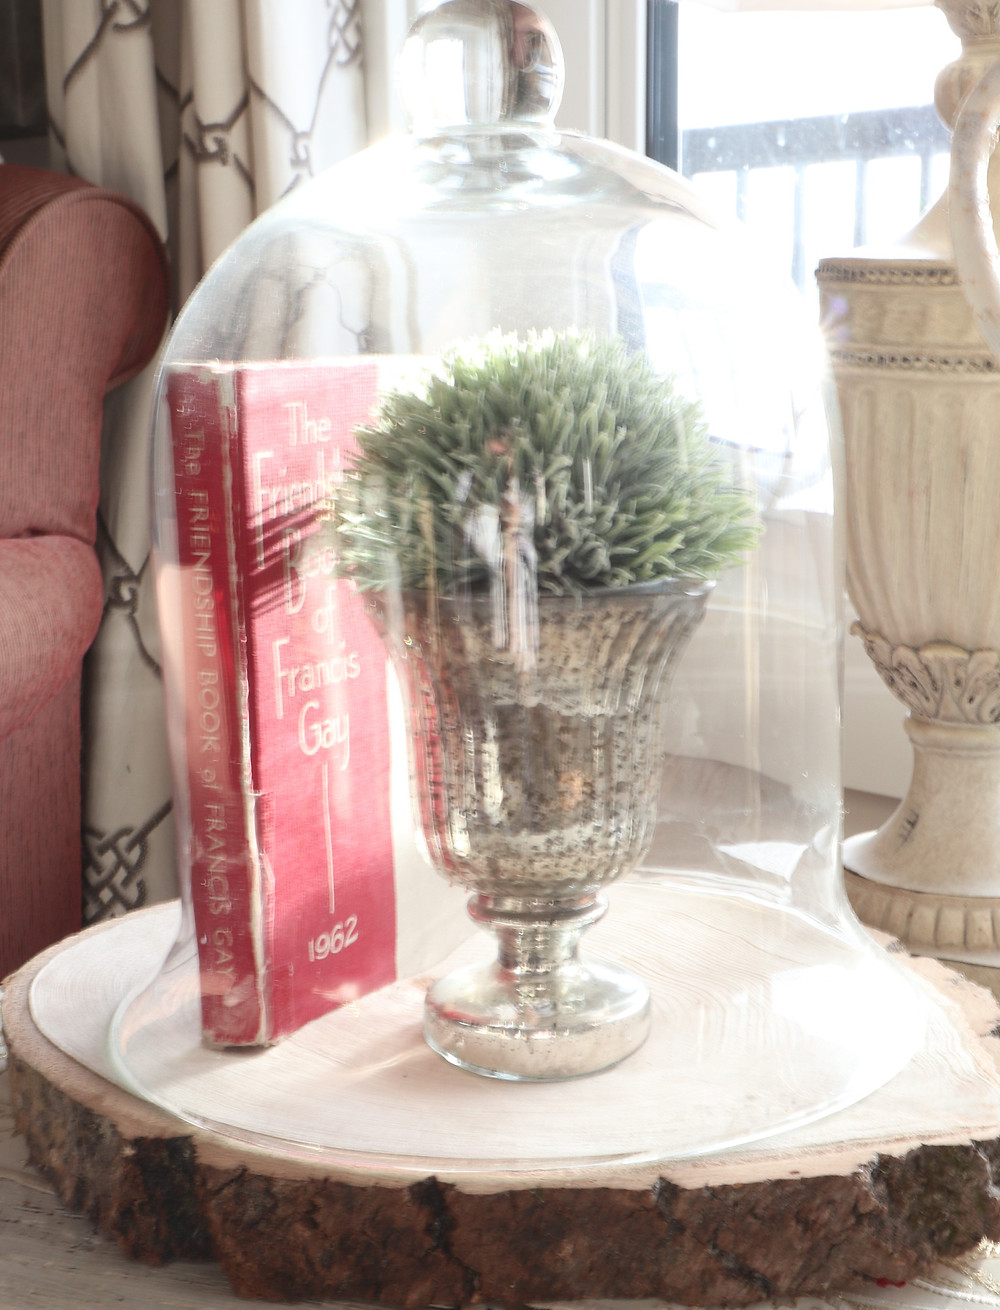 vintage book under glass cloche